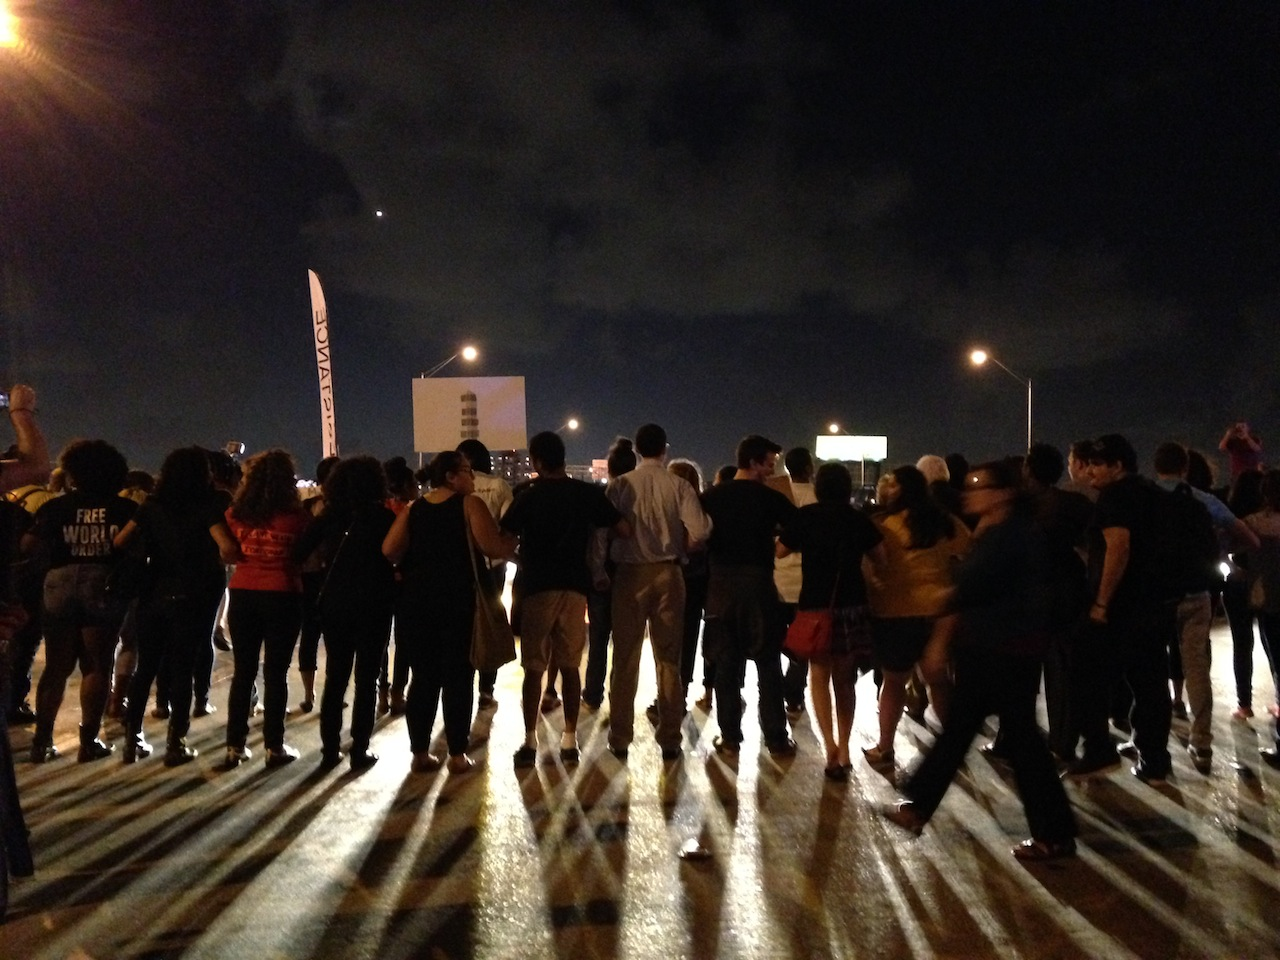 Protesters in Miami (all photos by the author for Hyperallergic unless otherwise noted)